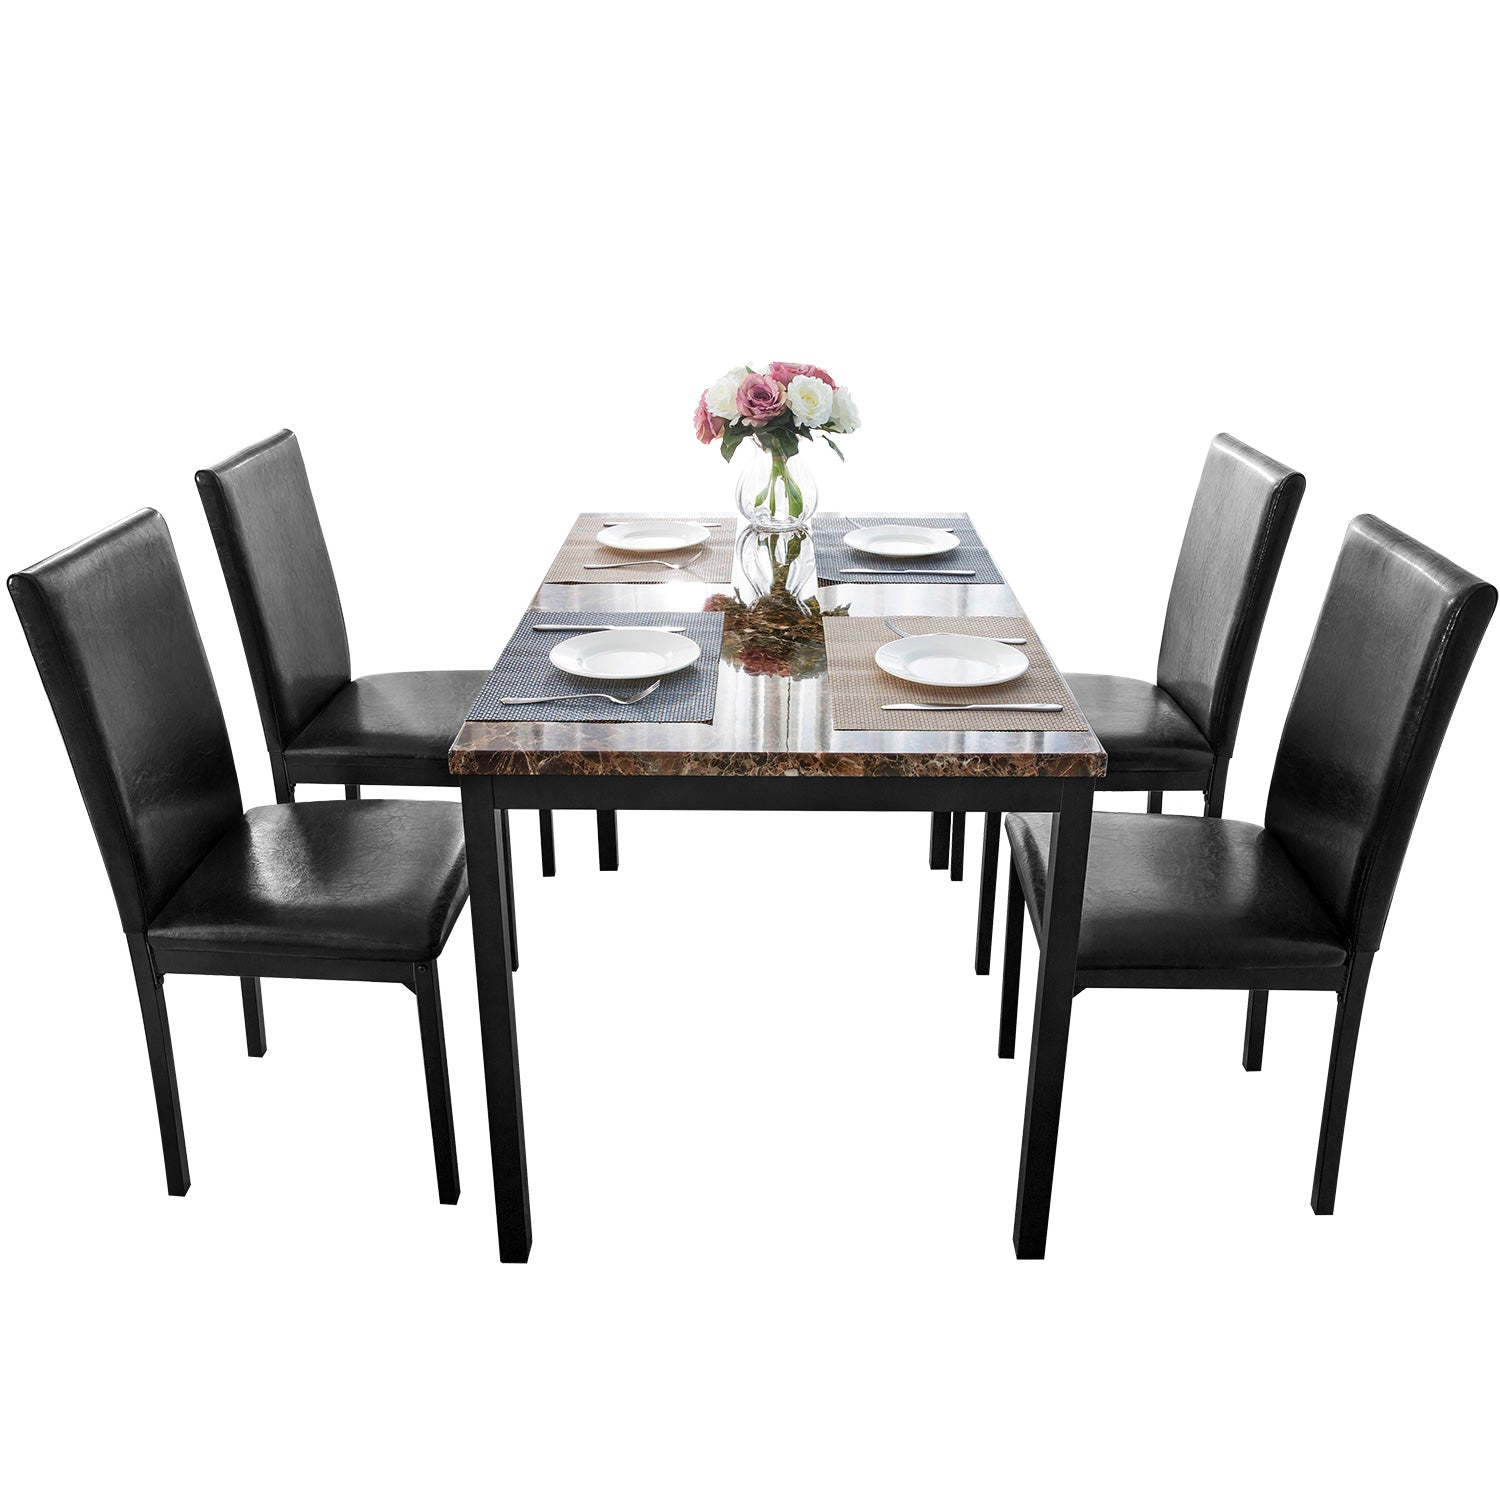 5 Counts - Dining Set Kitchen Table Set Dining Table and 4 Leather Chairs BHSG000110